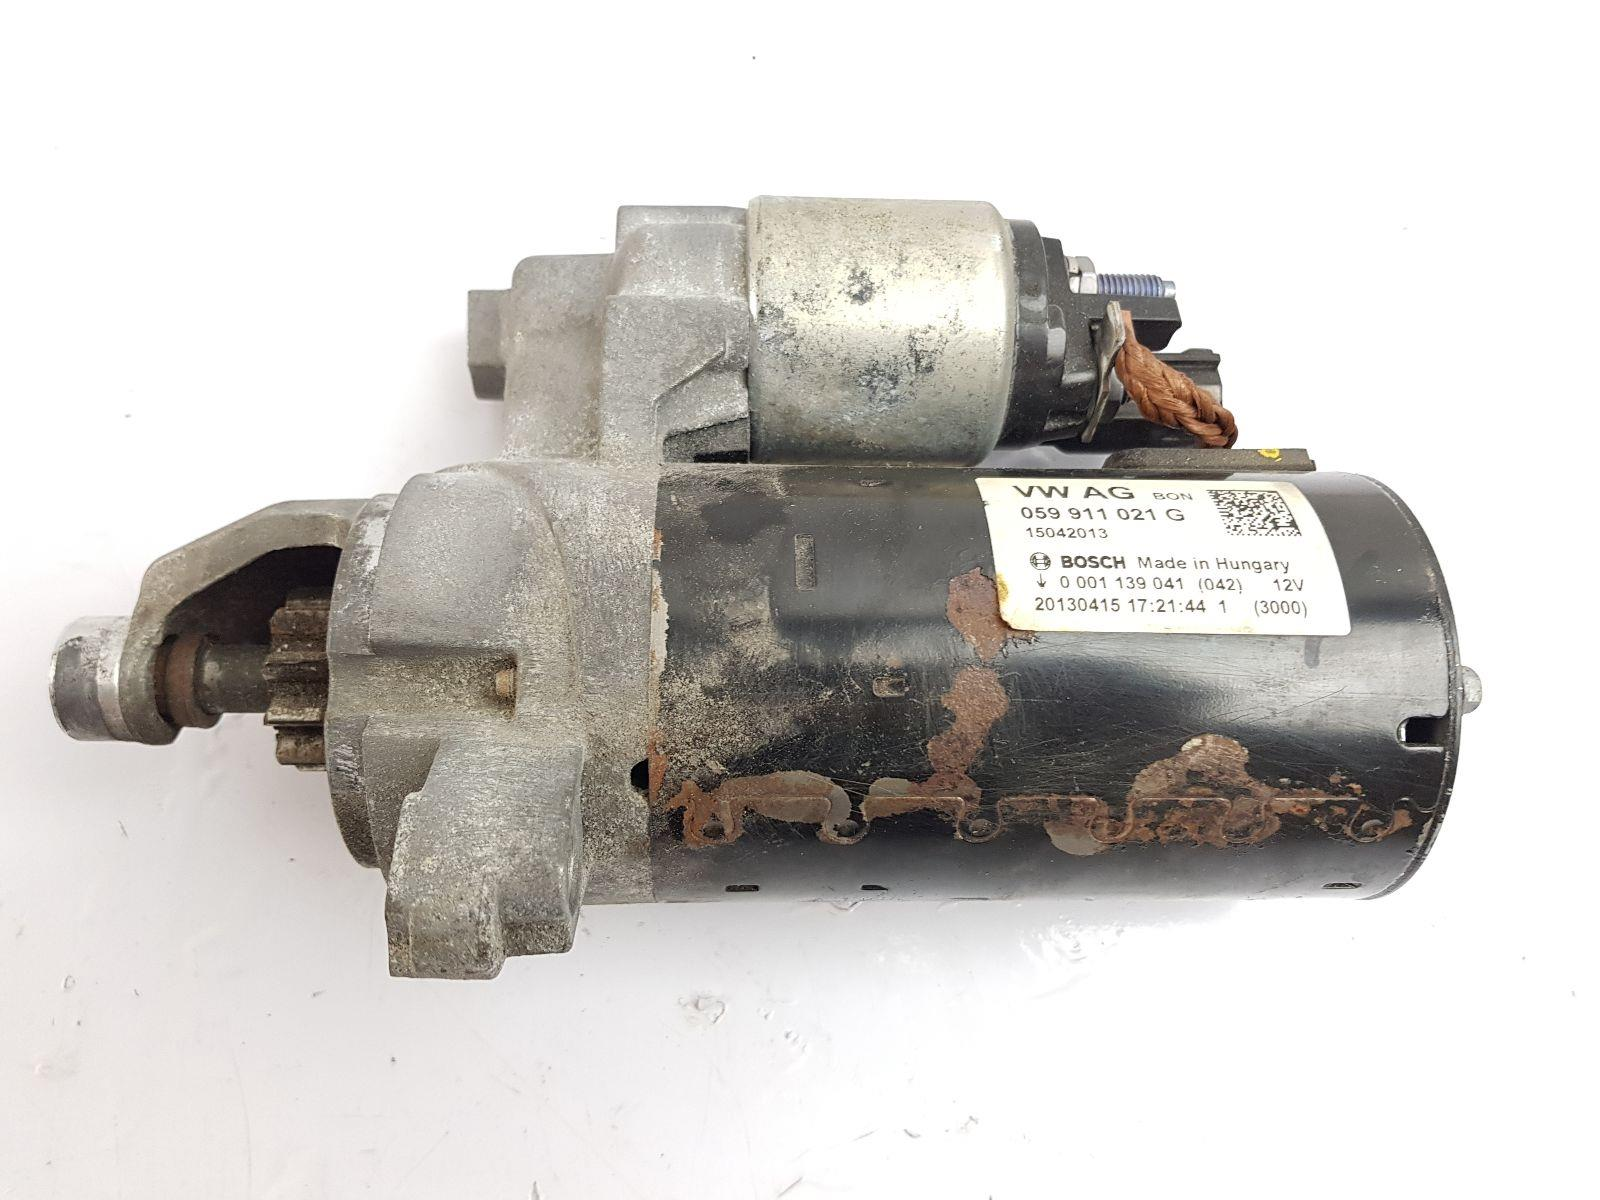 Audi A5 2011 To 2017 Starter Motor (Diesel / Automatic) for